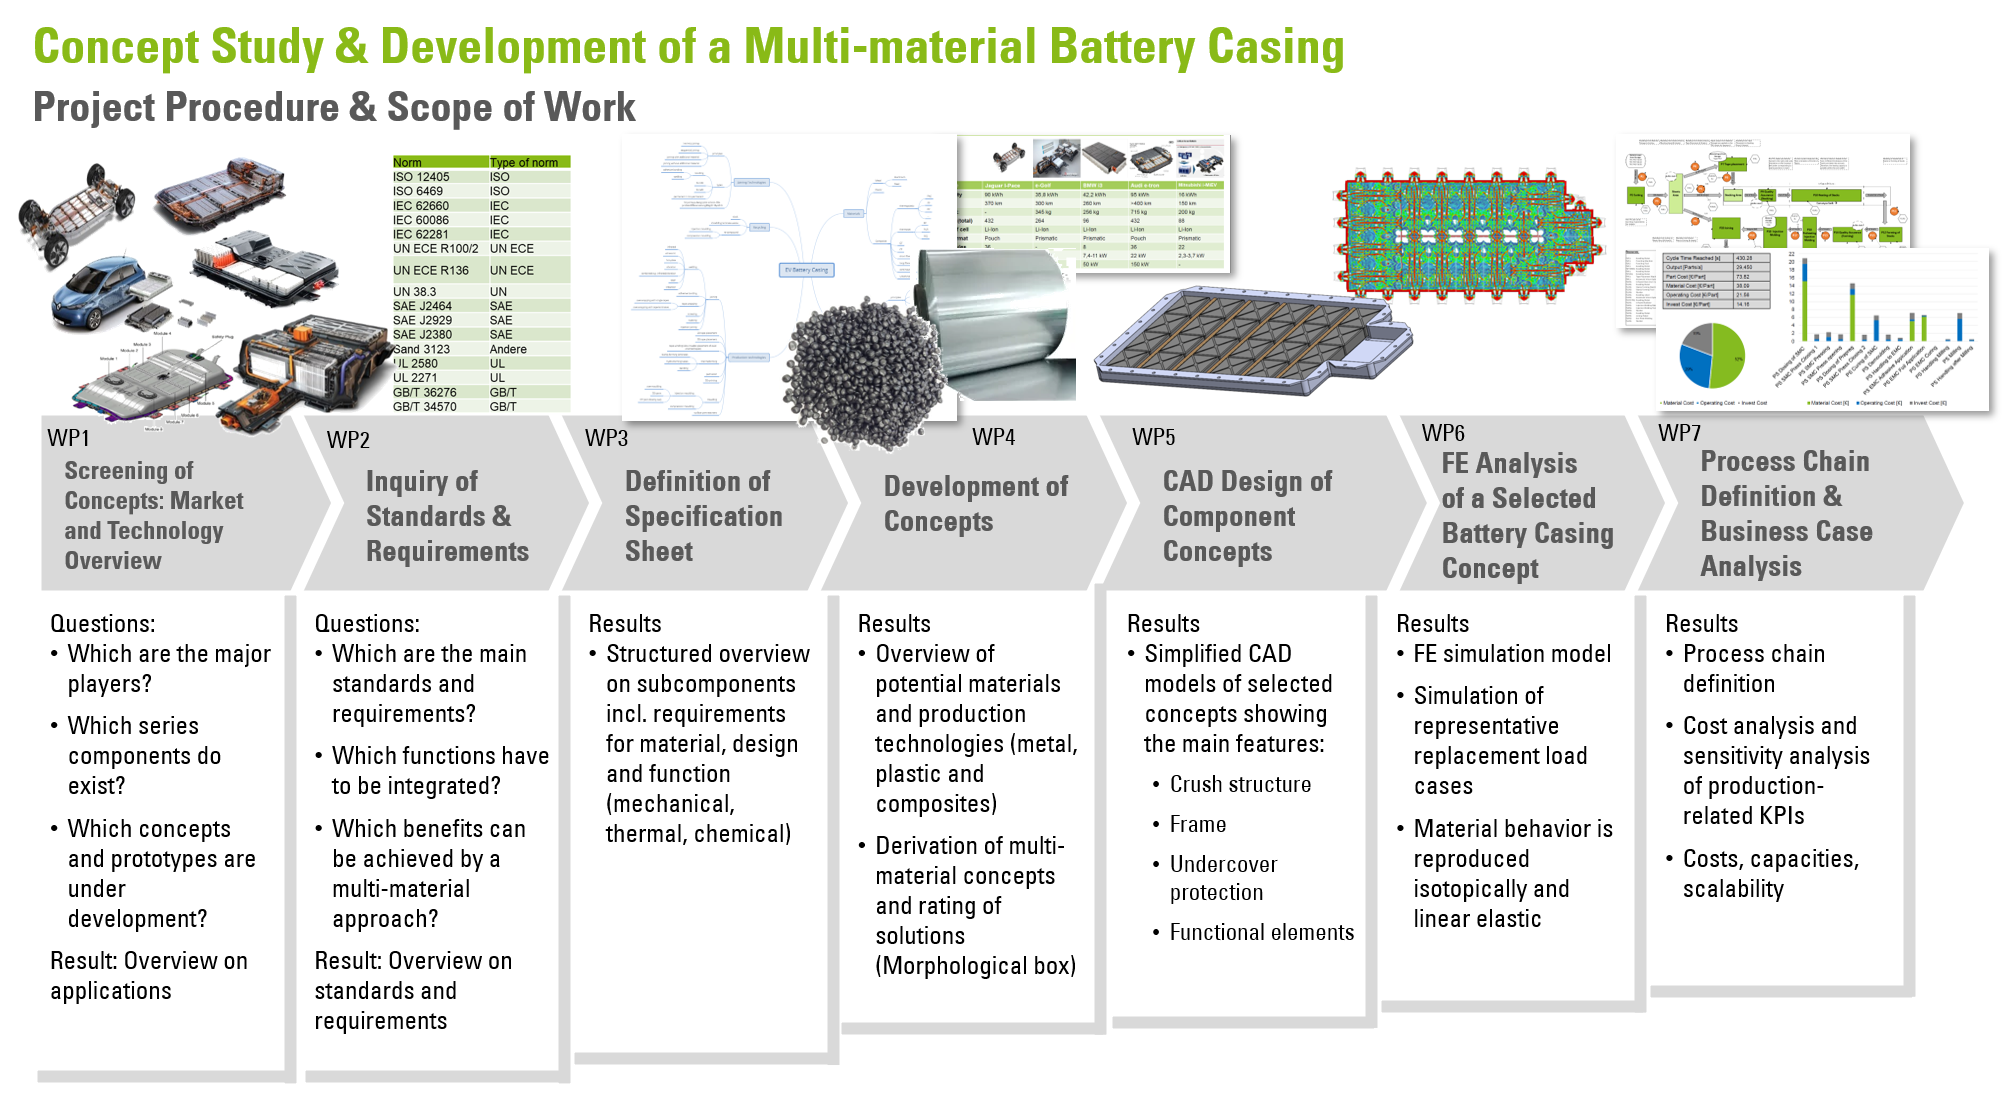 Multi-material battery casing for electromobility